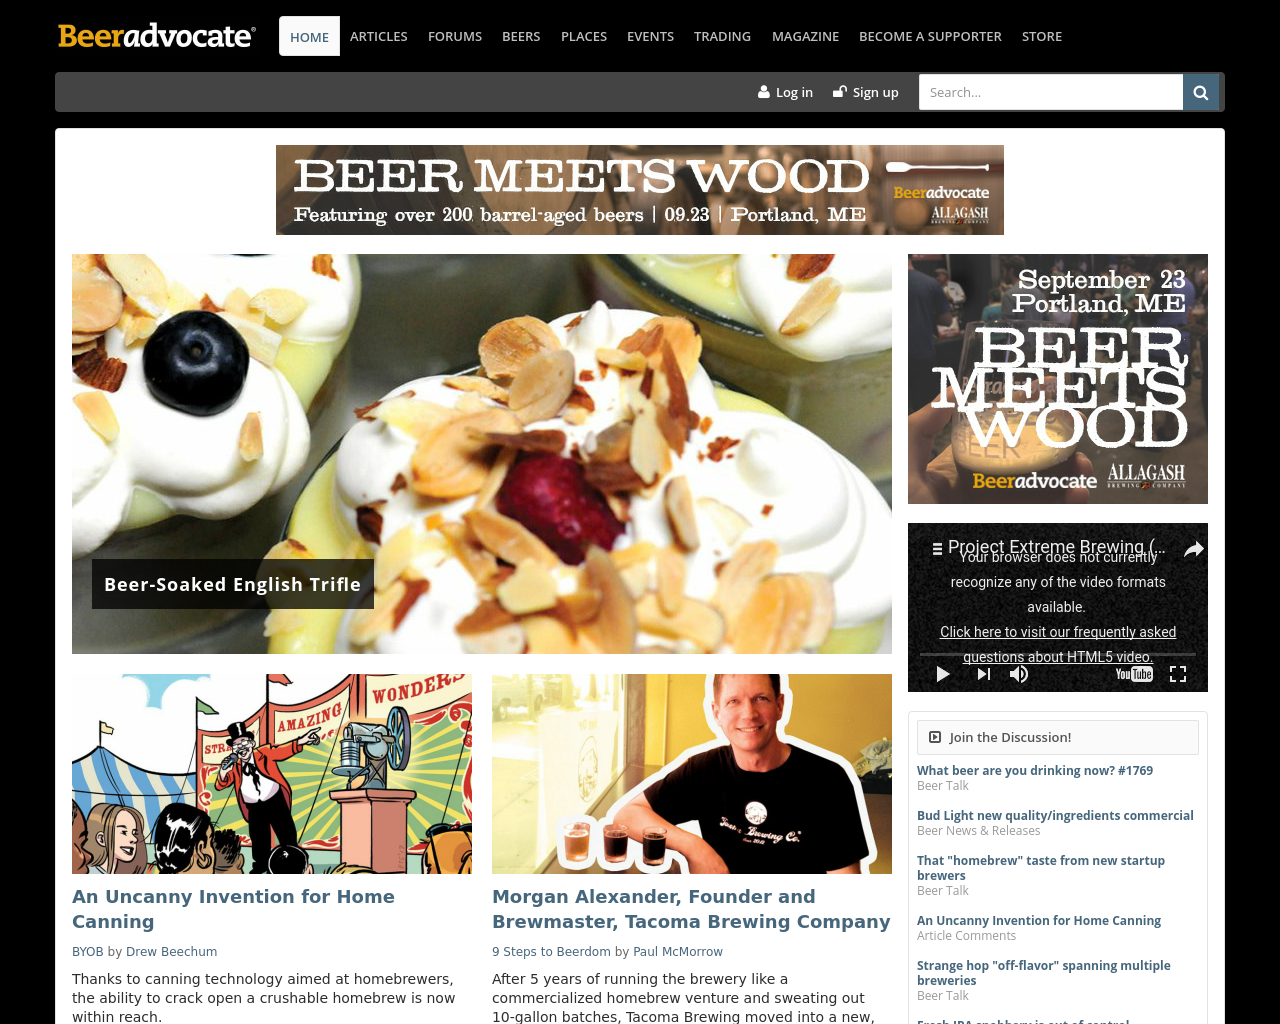 BeerAdvocate-Advertising-Reviews-Pricing